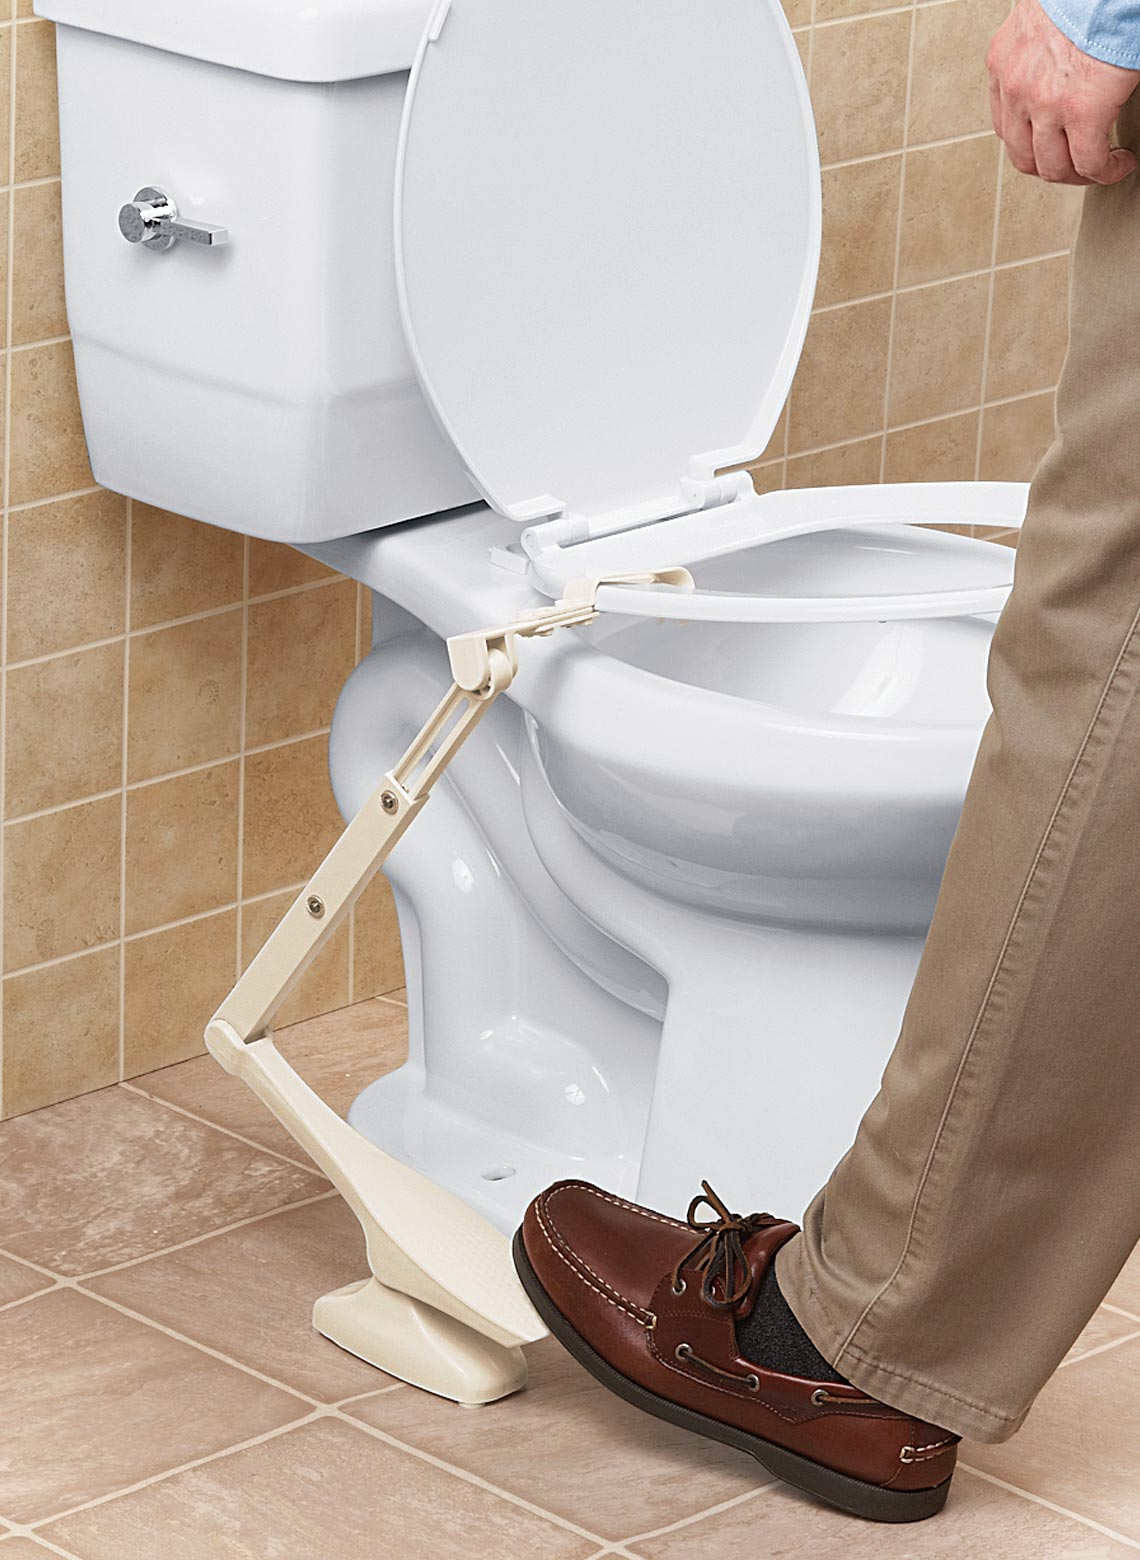 Hands-Free Toilet Seat Lifter | DrLeonards.com